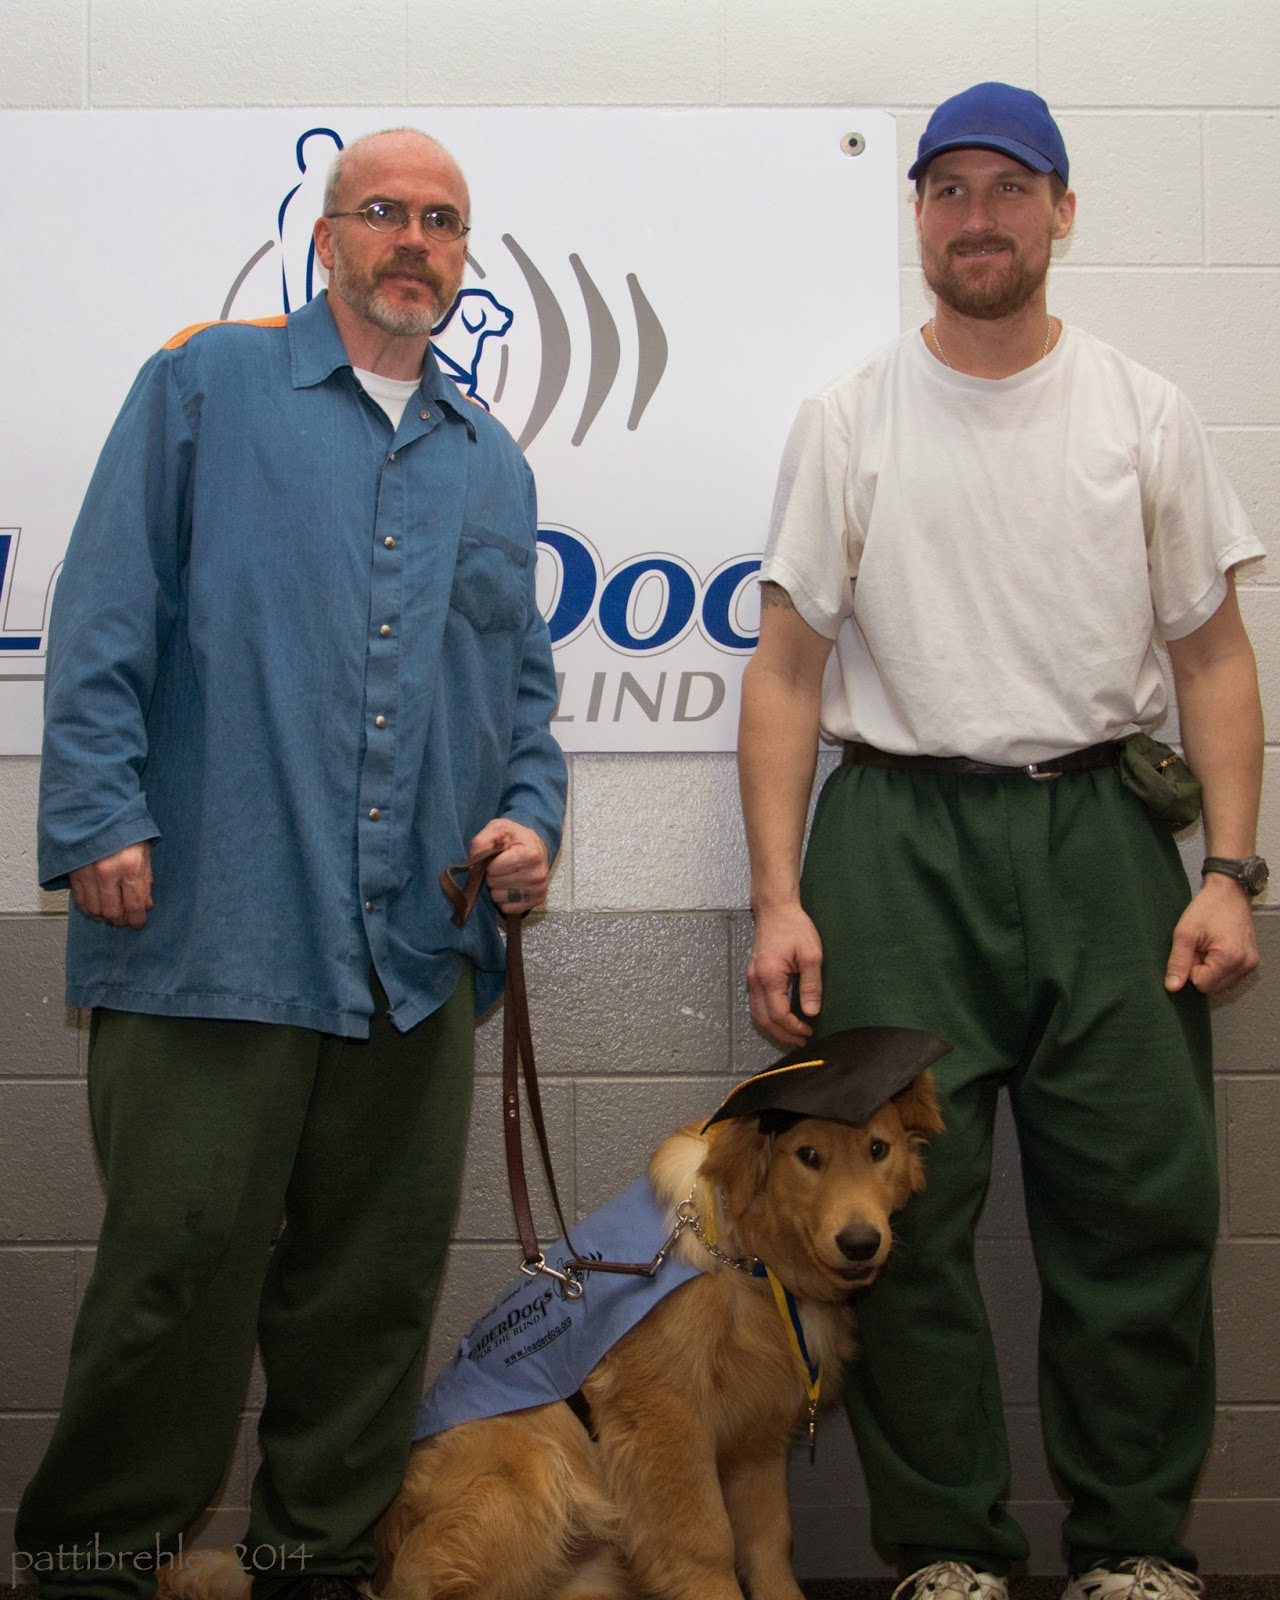 Two men are standing with a golden retriever that is sitting between them. The dog is wearing a baby blue jacket and a black graduation cap and a metal around its neck. The man on the left is wearing a blue longsleeve shirt and green pants. The man on the righ is wearing a white t-shirt, green pants and a blue baseball cap.